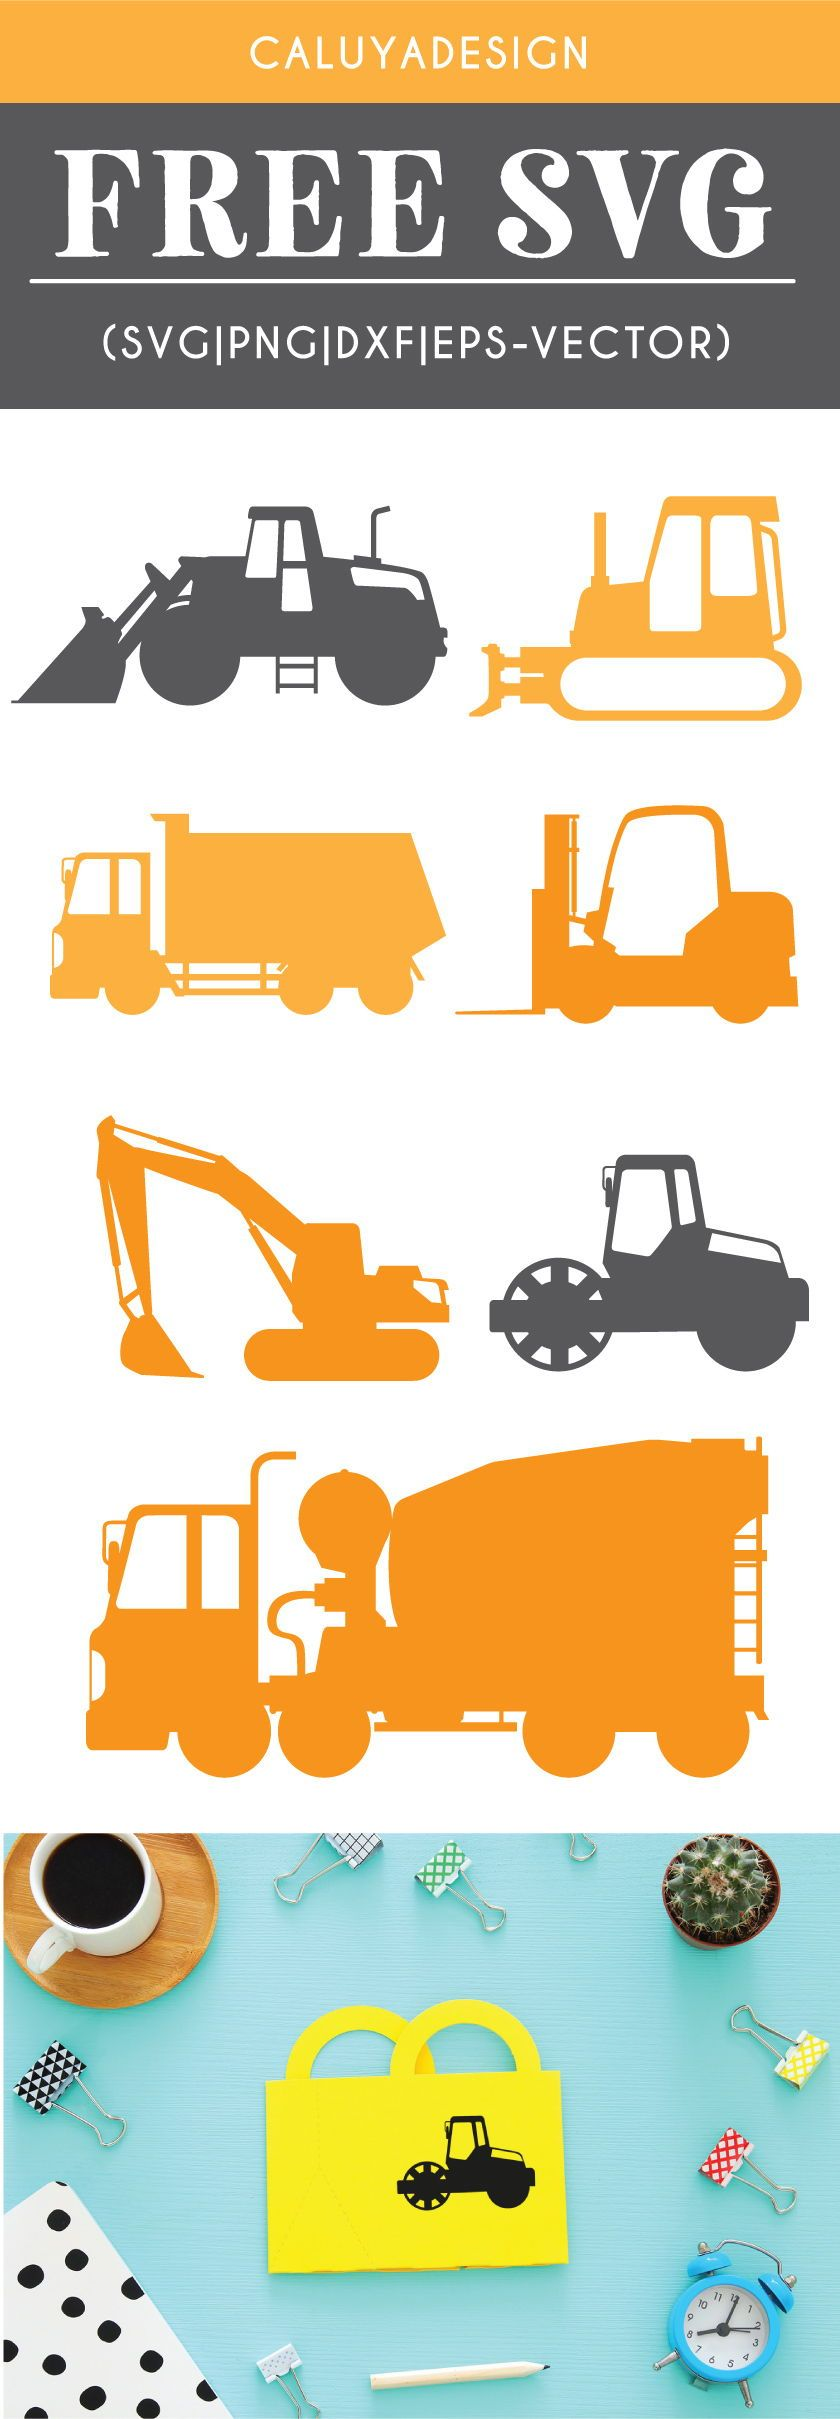 construction svg #781, Download drawings